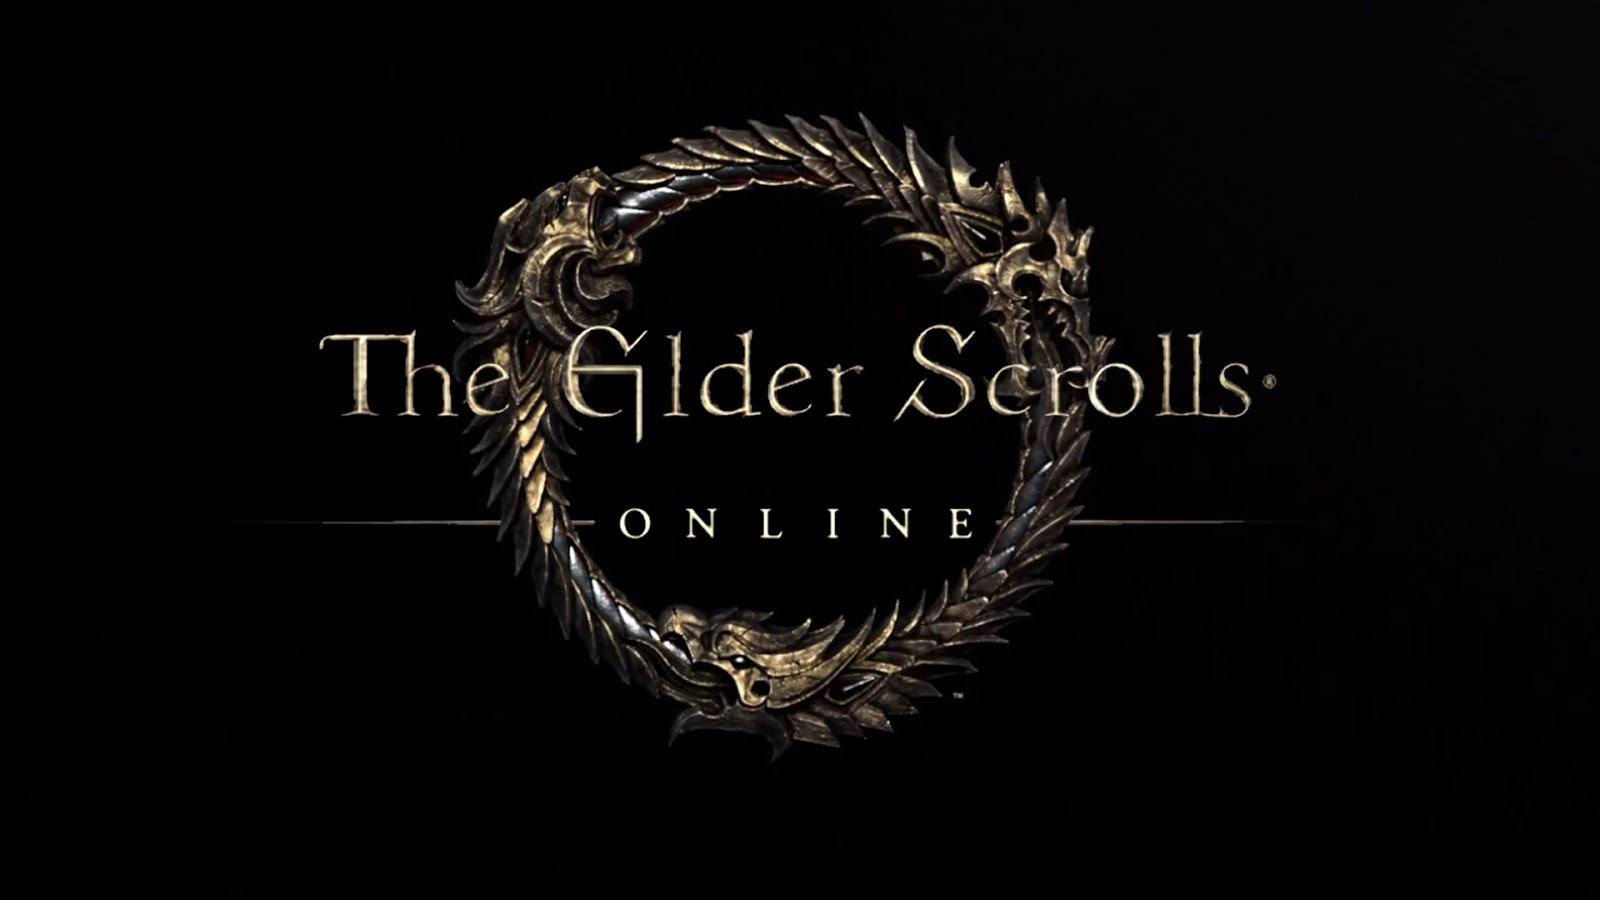 The Elder Scrolls Online - The key for the PTA